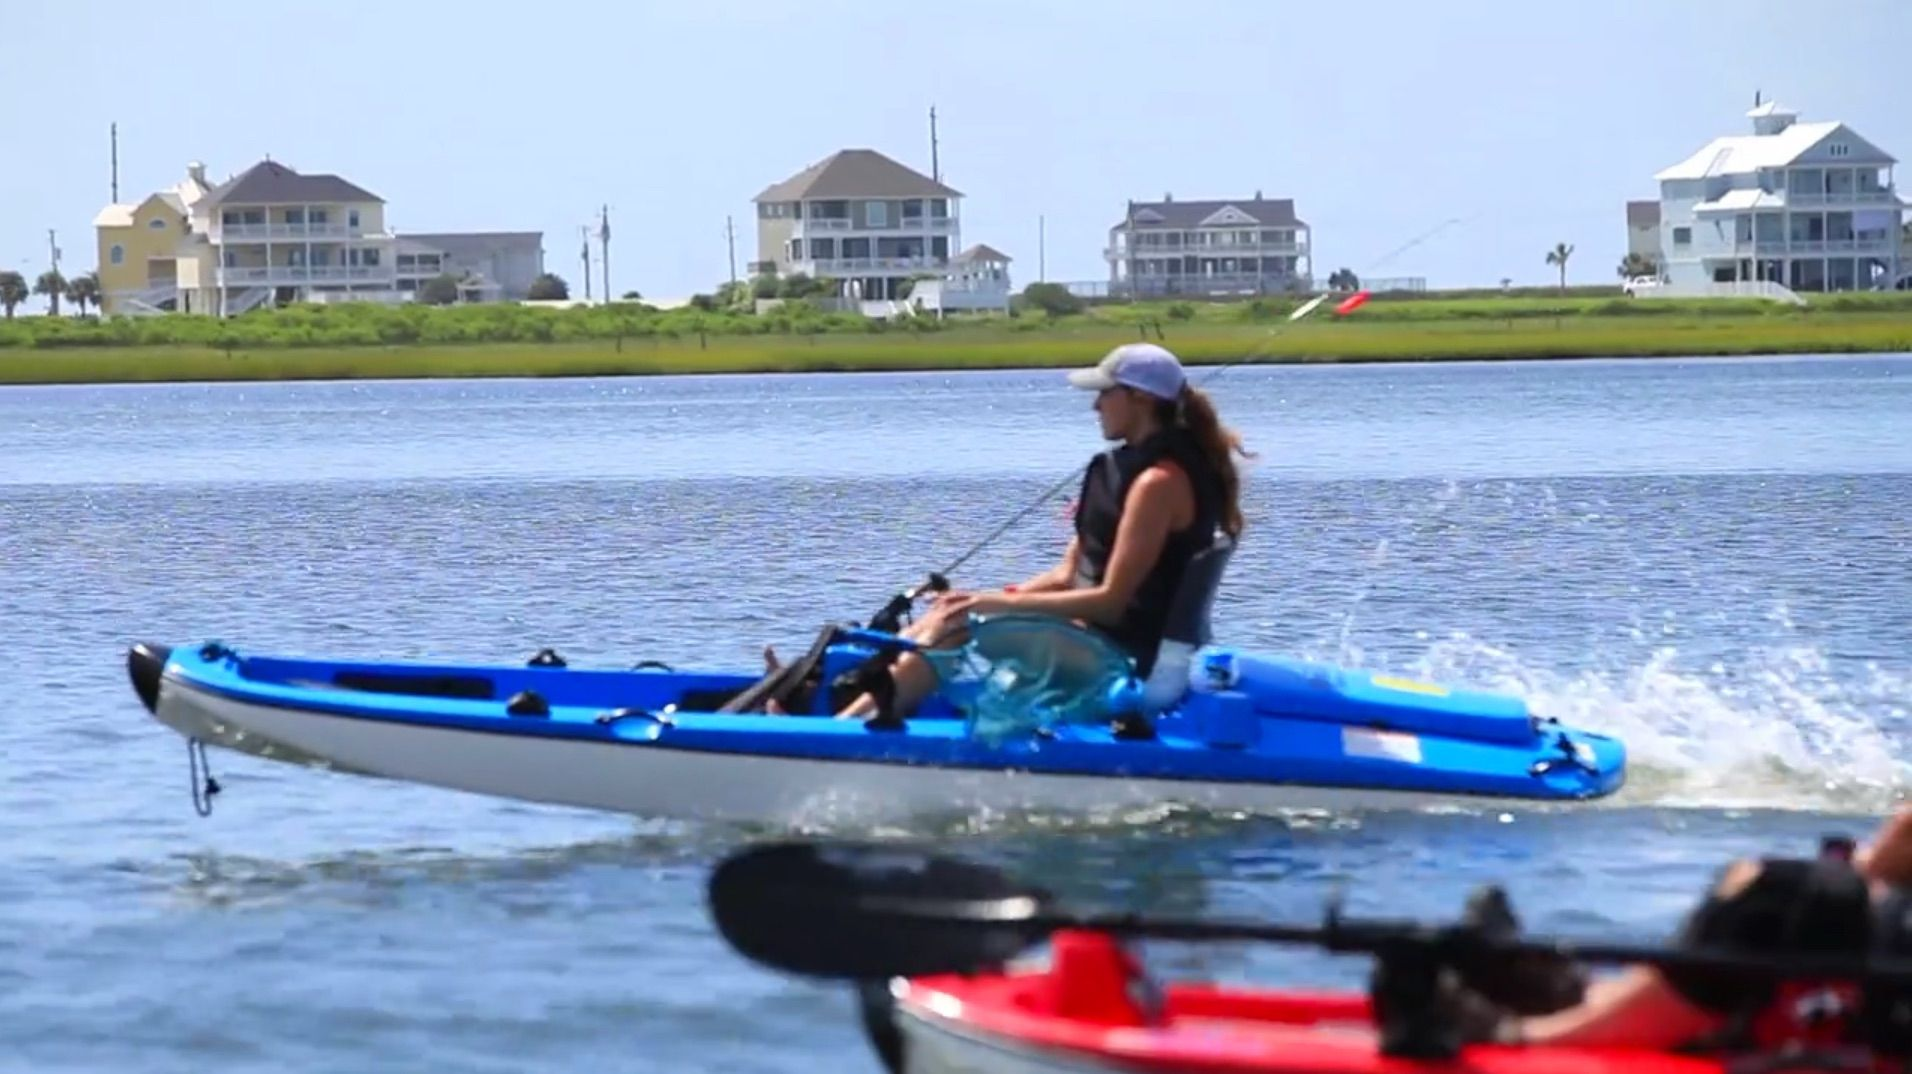 Have You Seen This Jet Propelled Kayak That Can Hit 32 MPH [VIDEO